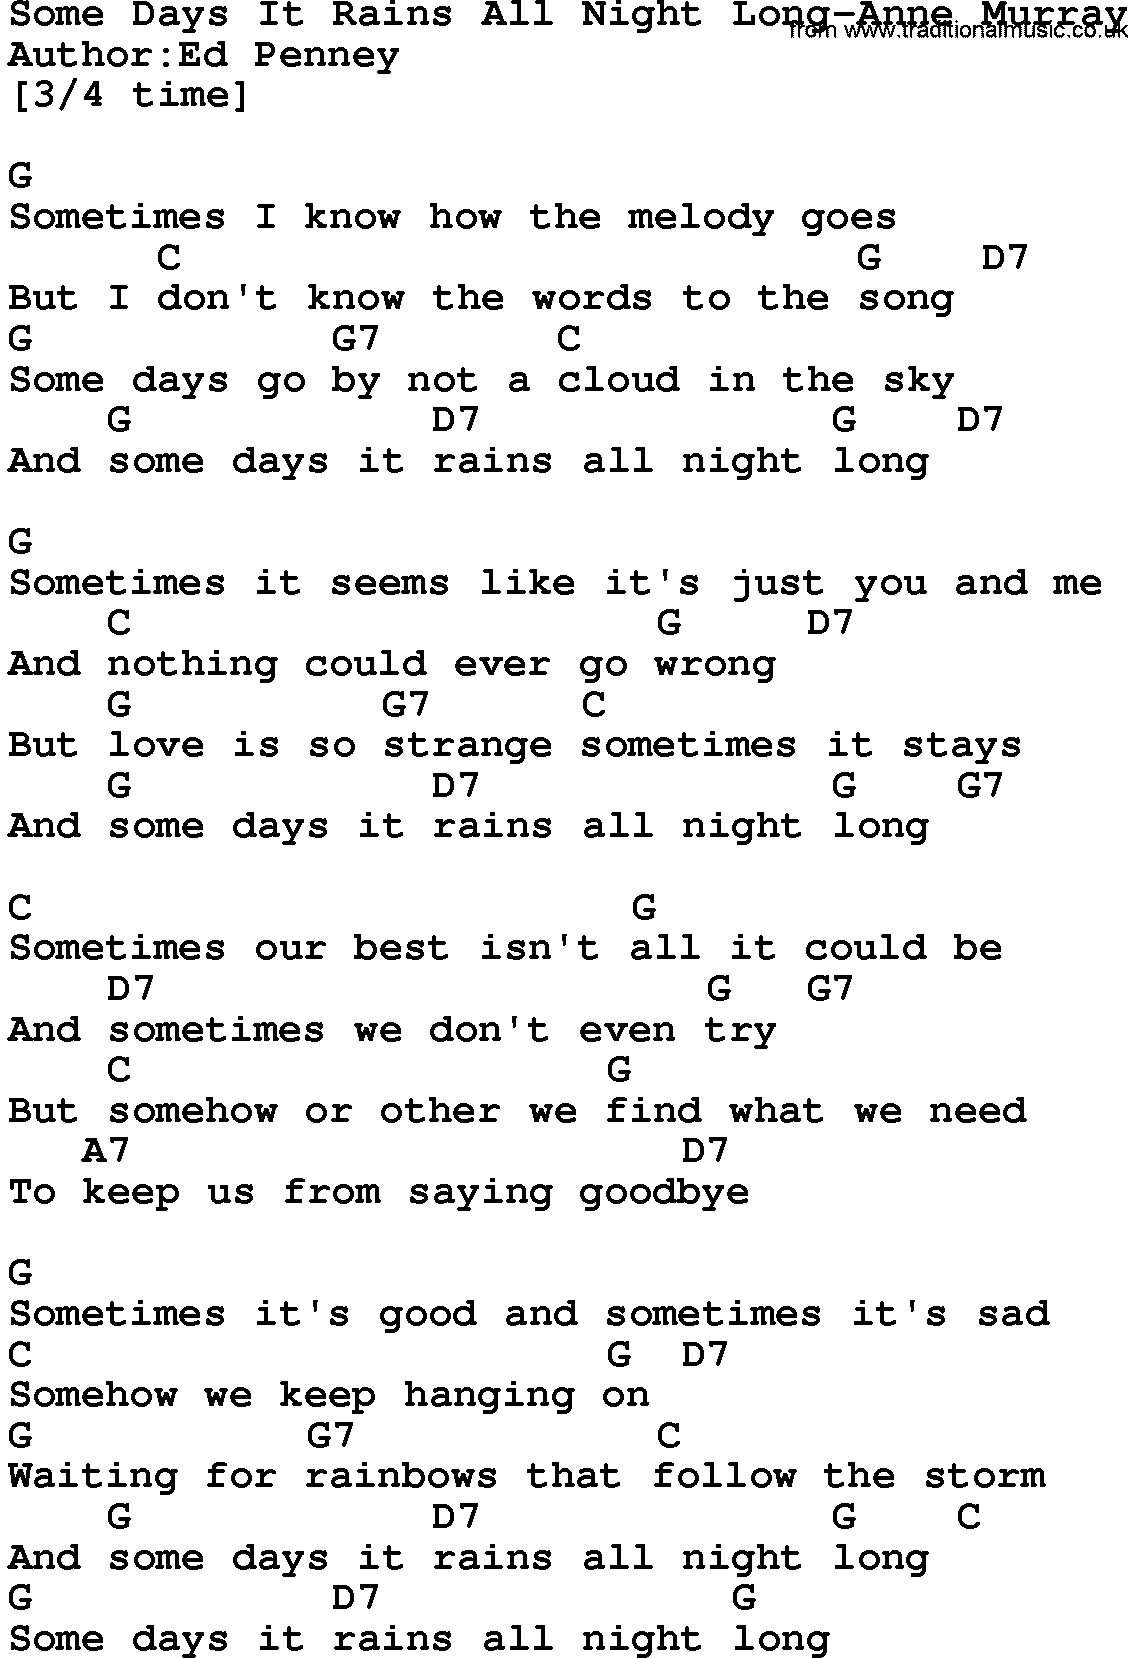 Country musicsome days it rains all night long anne murray lyrics country musicsome days it rains all night long anne murray lyrics and chords hexwebz Images